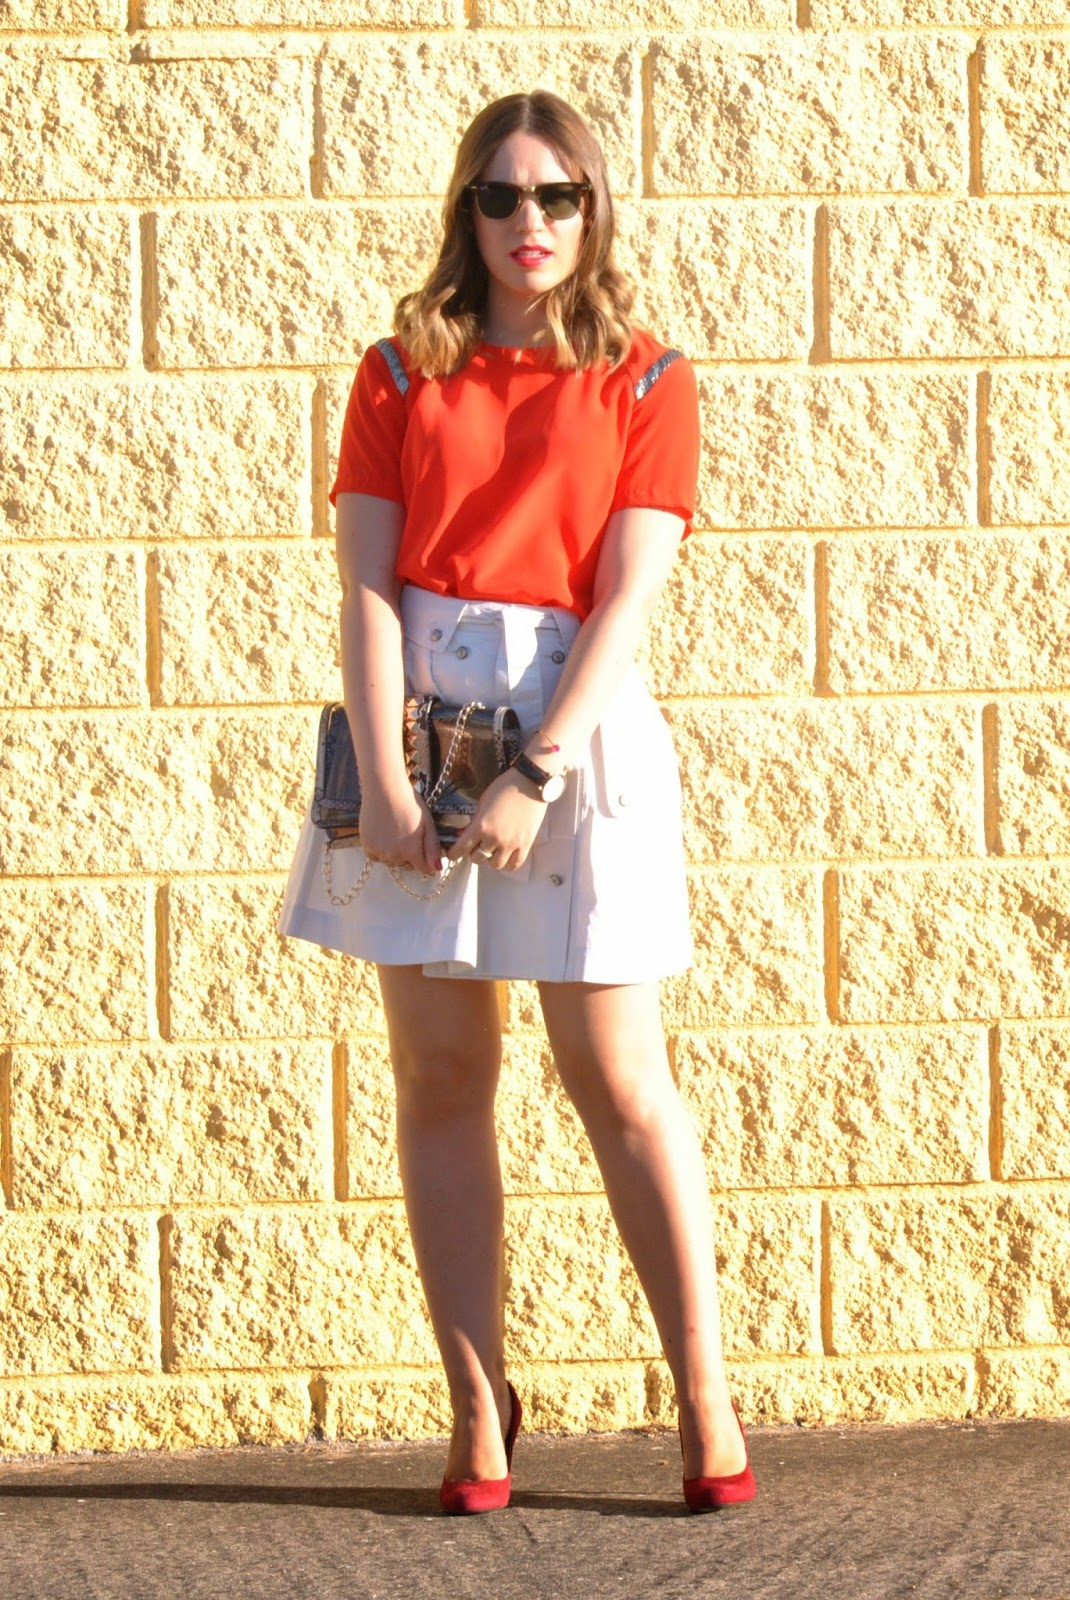 The trench-skirt